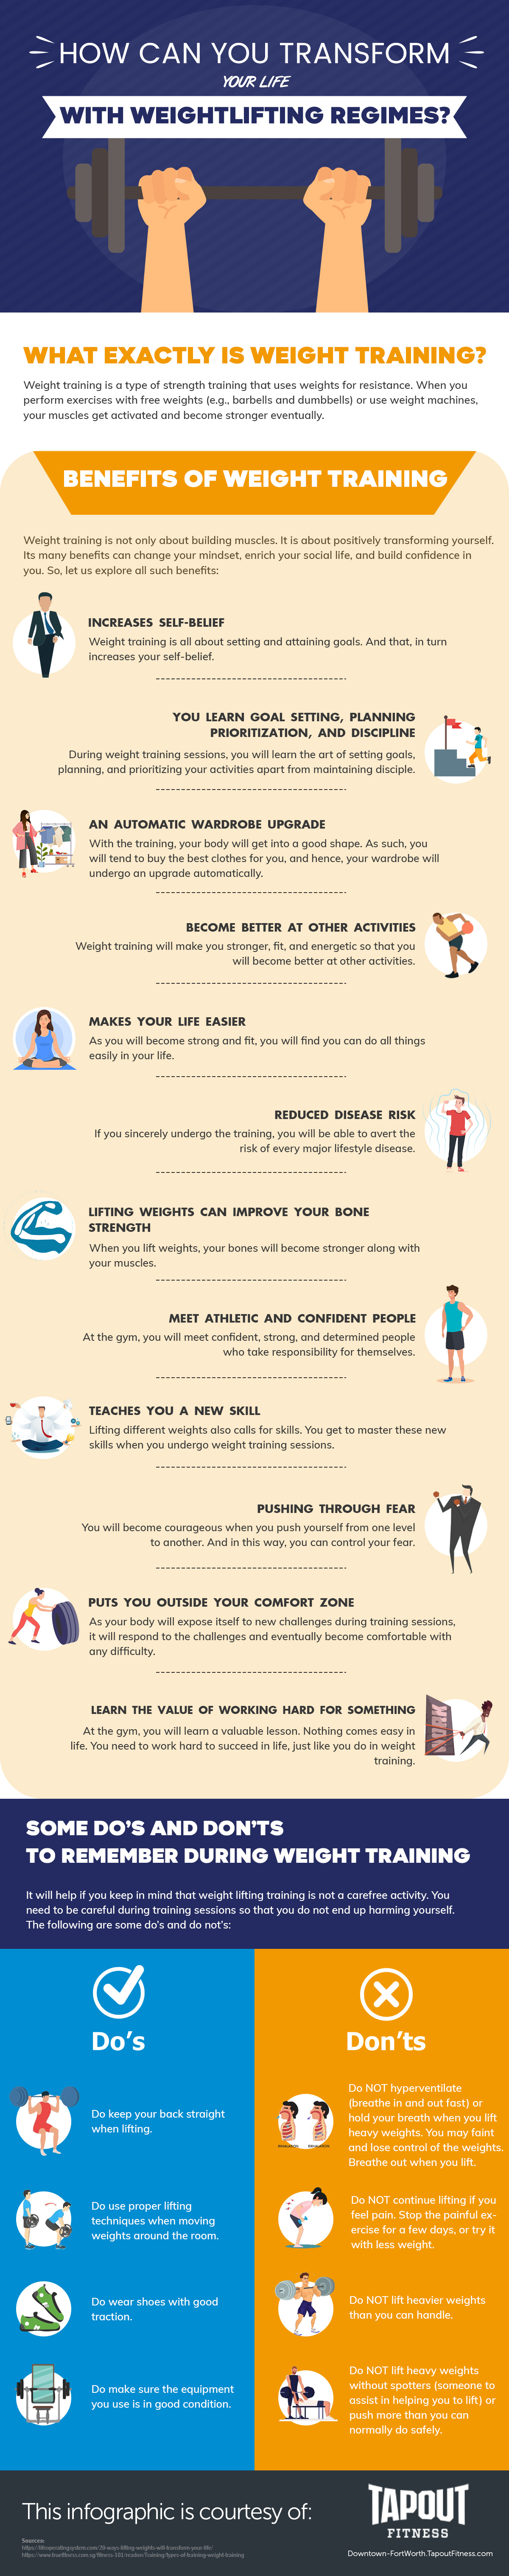 Transform Life with Weightlifting Infographic